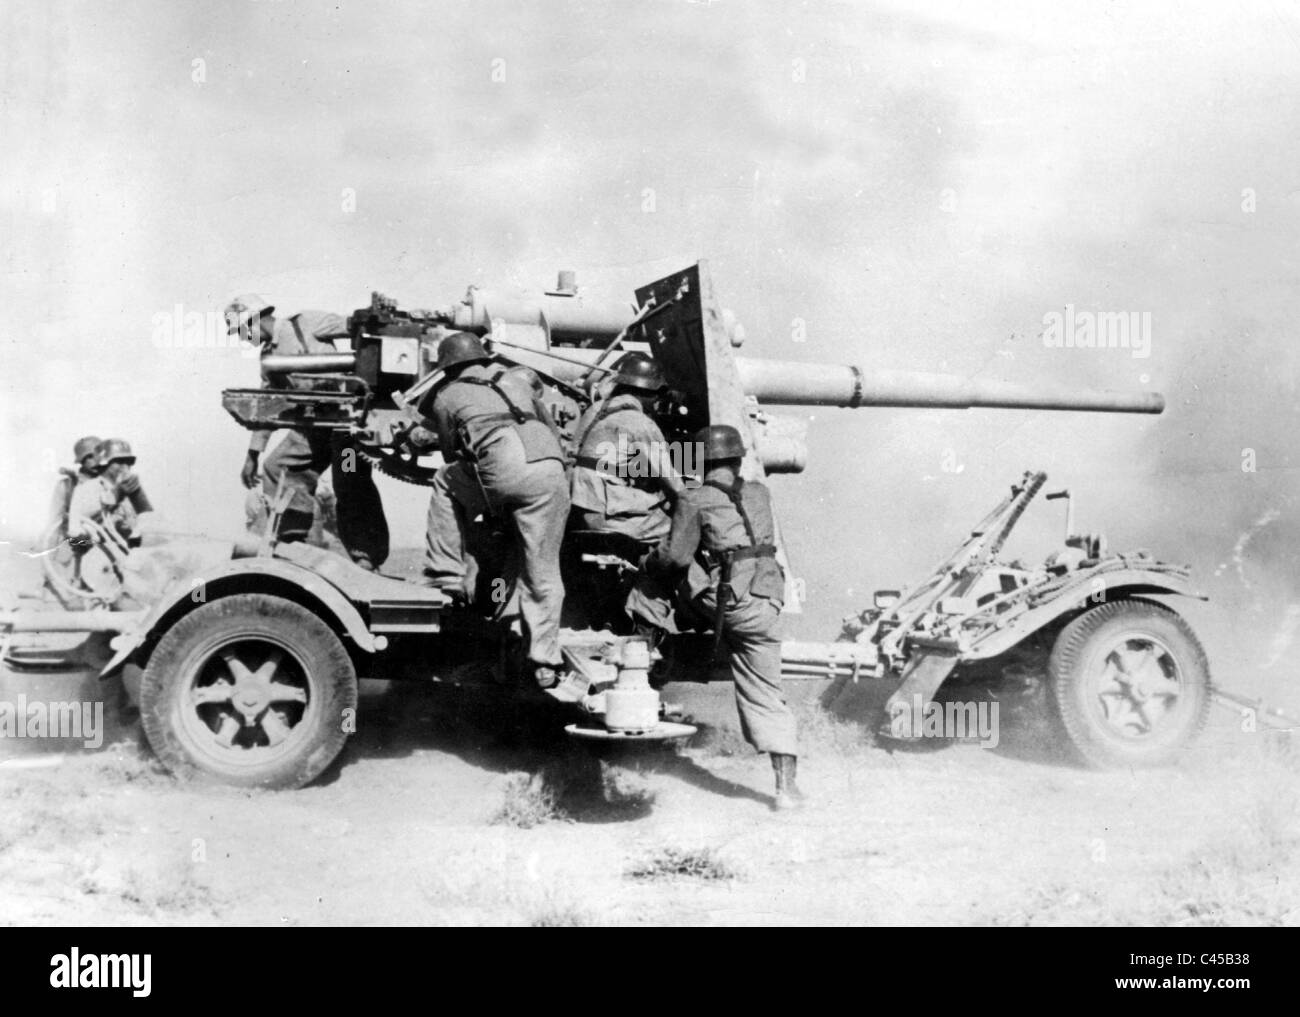 German 8,8cm Flak 36 at the battle of El Alamein, 1942 - Stock Image